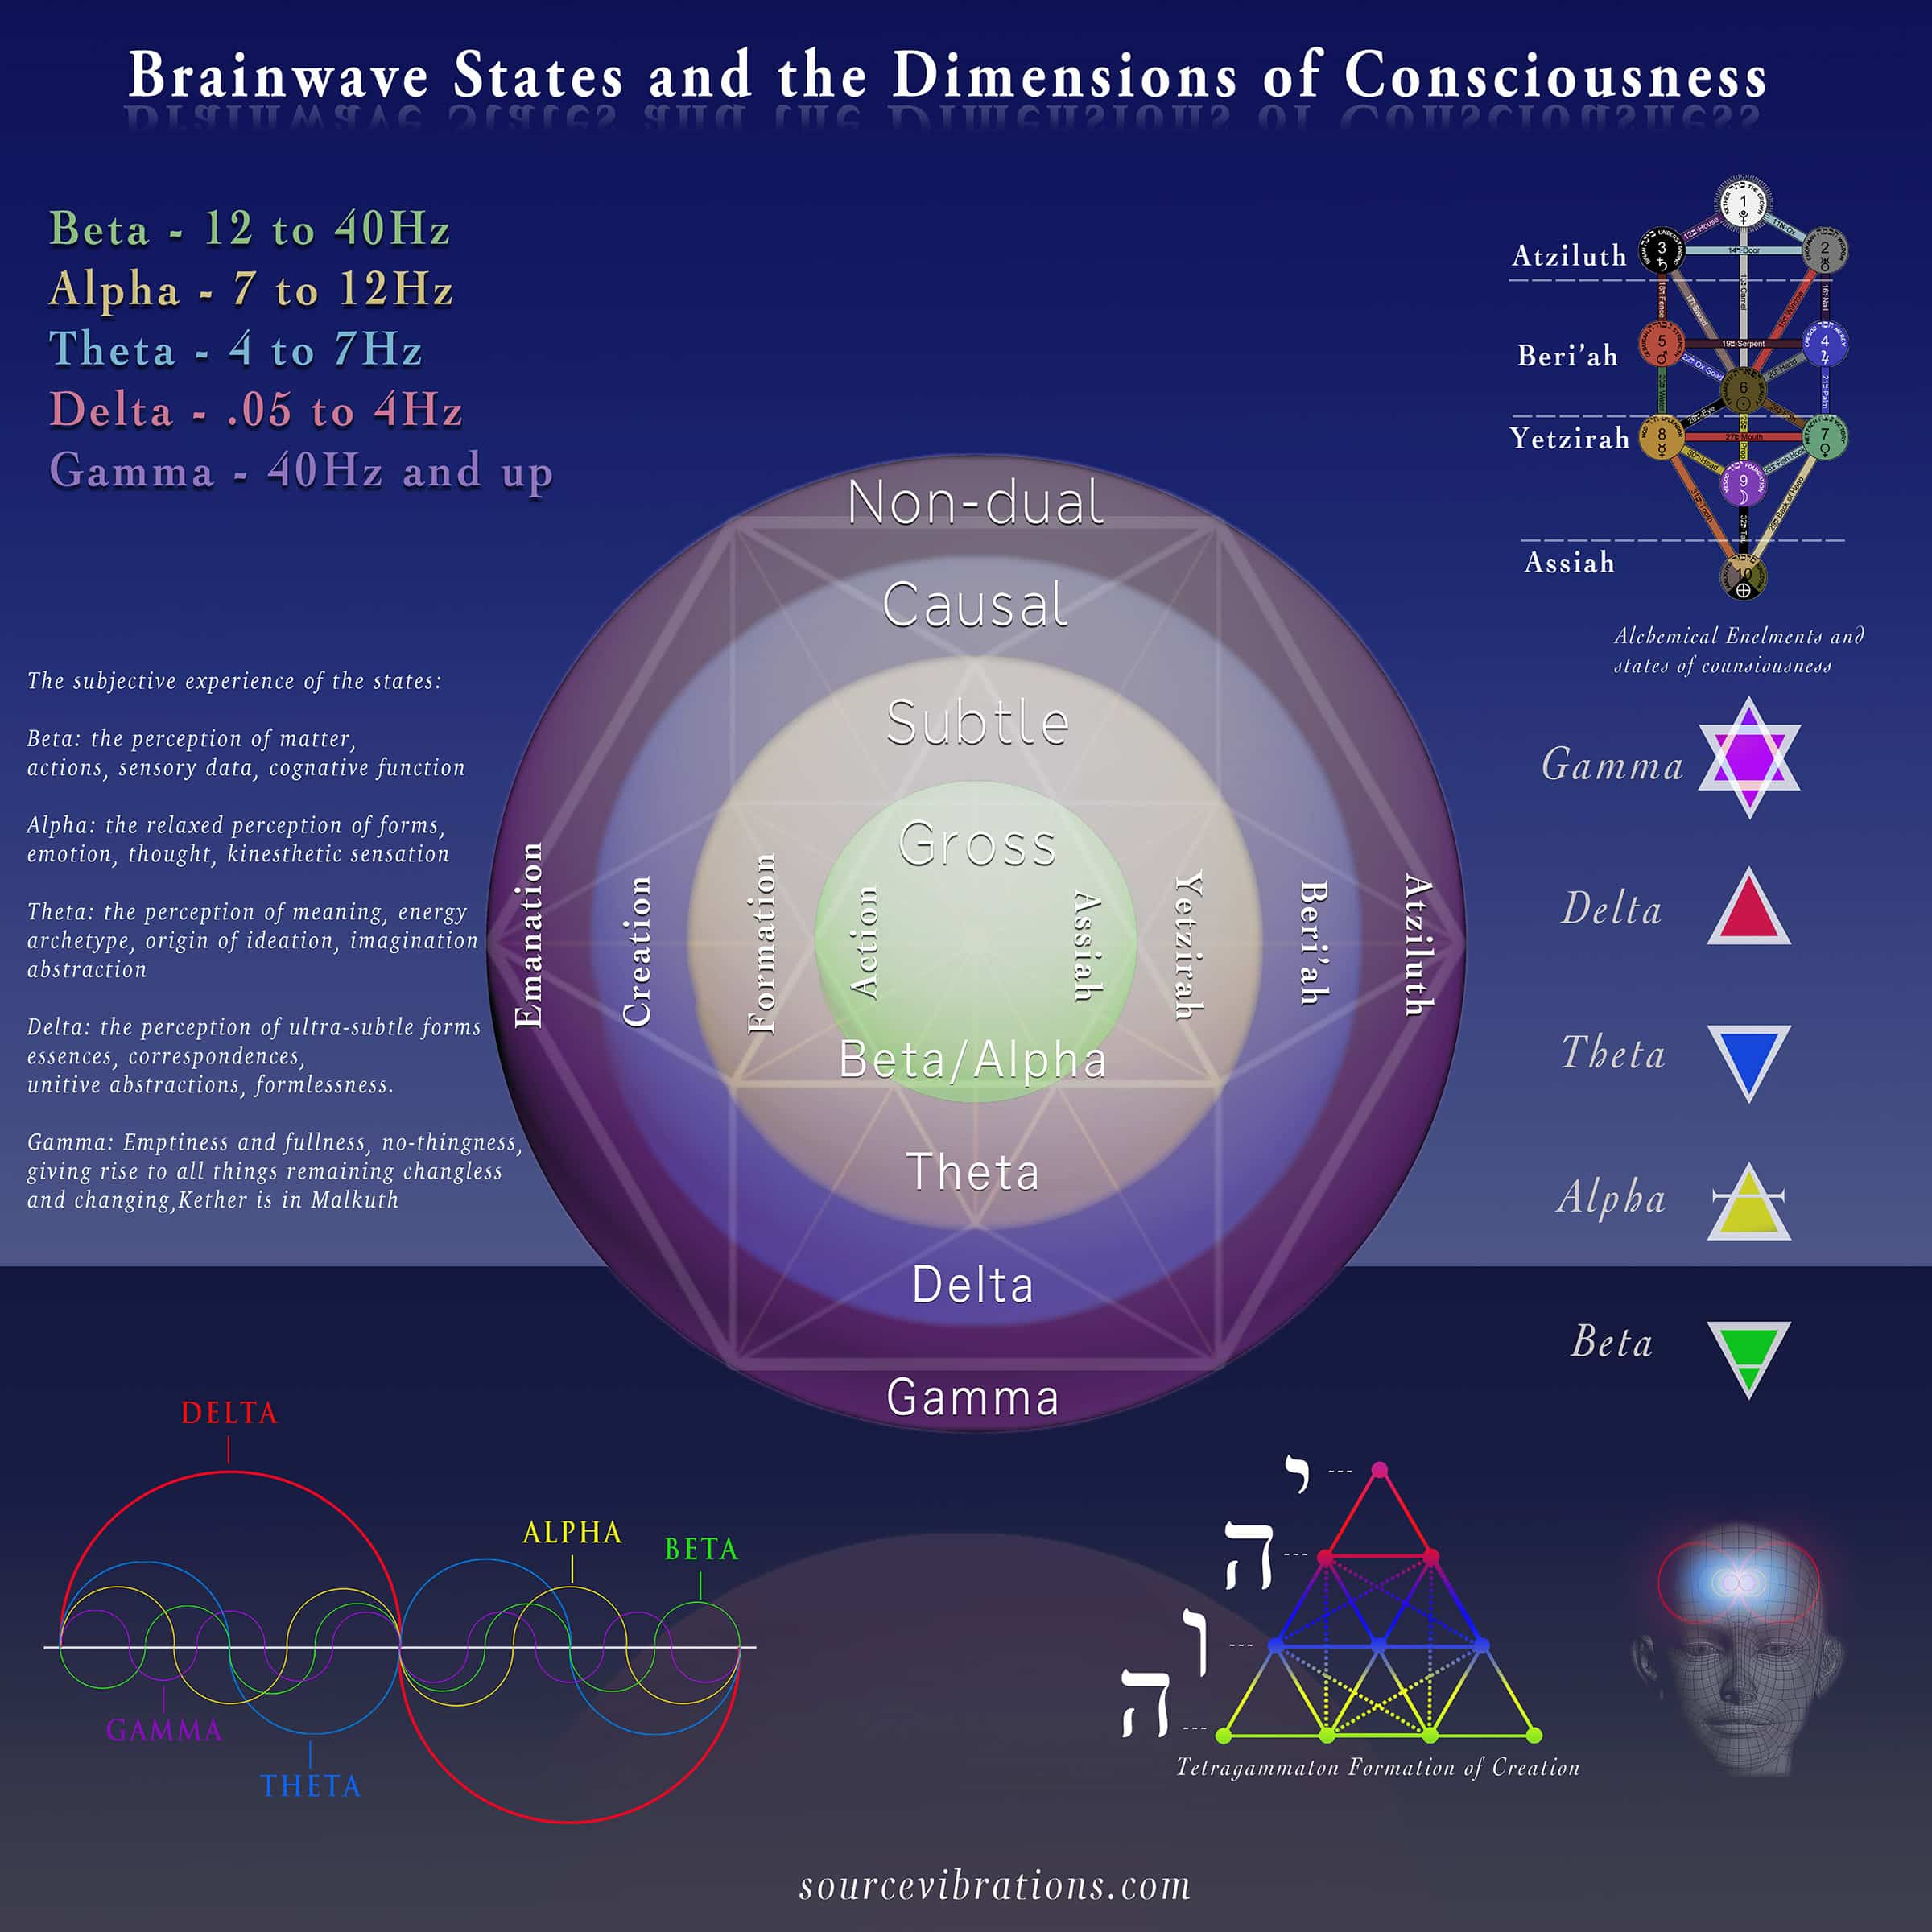 Brainwave States and the Dimensions of Consciousness sm